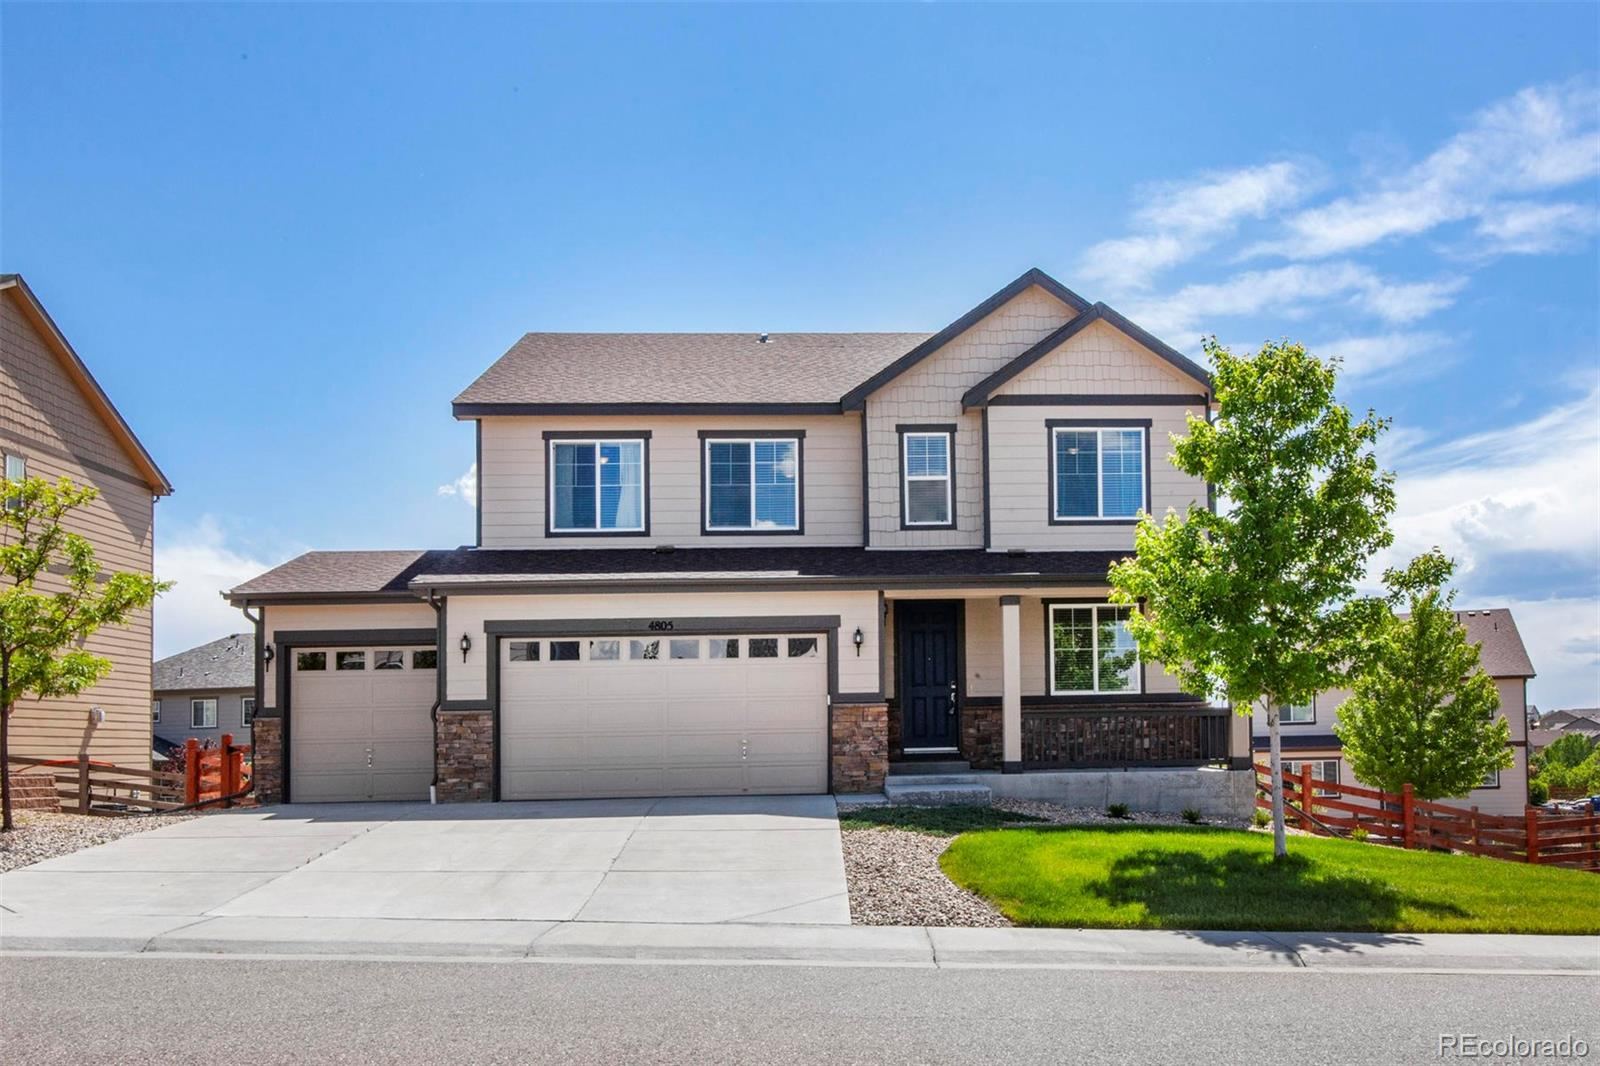 4805 S Riviera Way Property Photo - Aurora, CO real estate listing